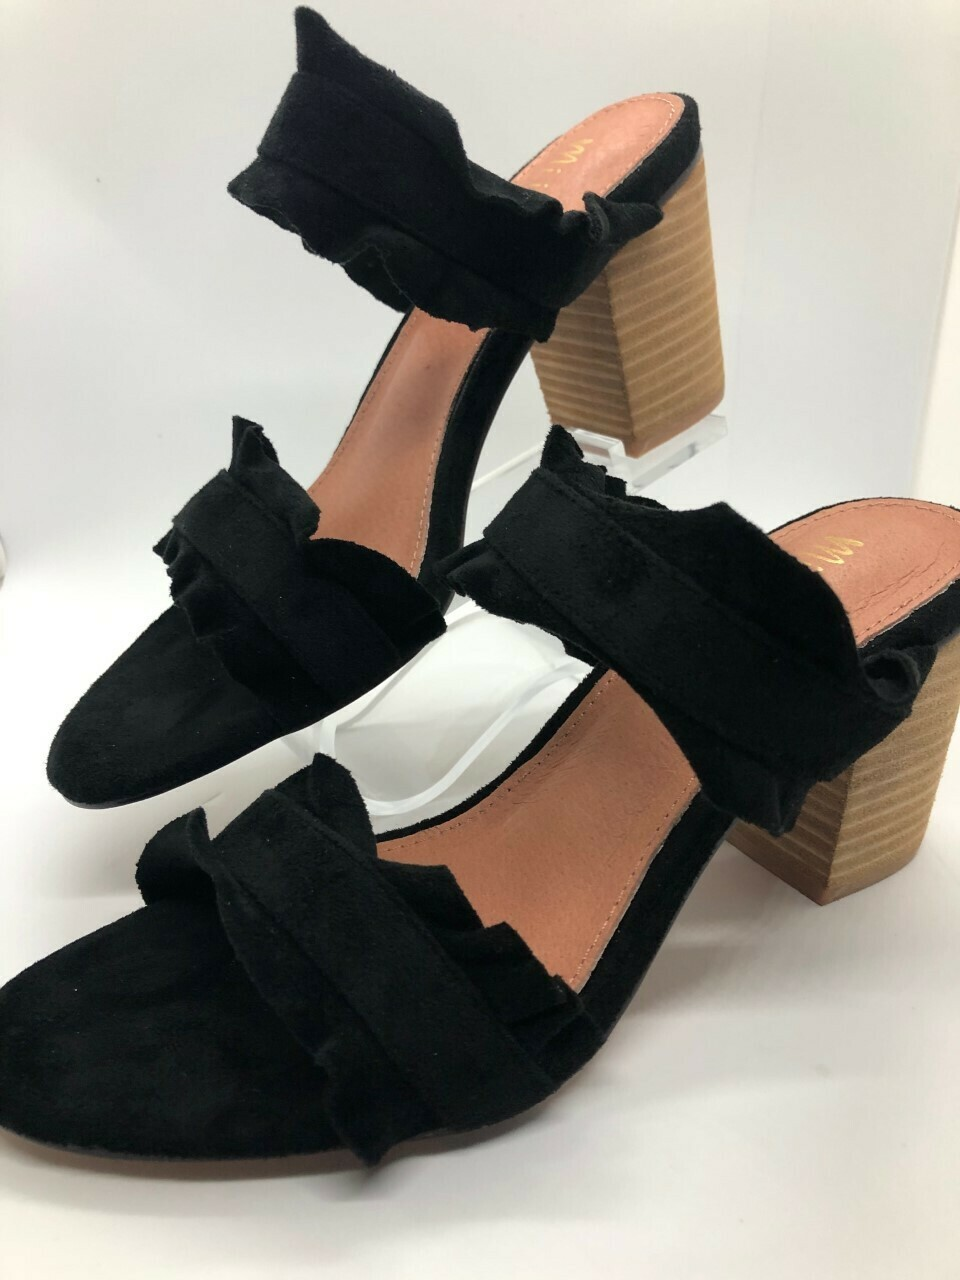 Black Leather Ruffle Block Heel Shoe